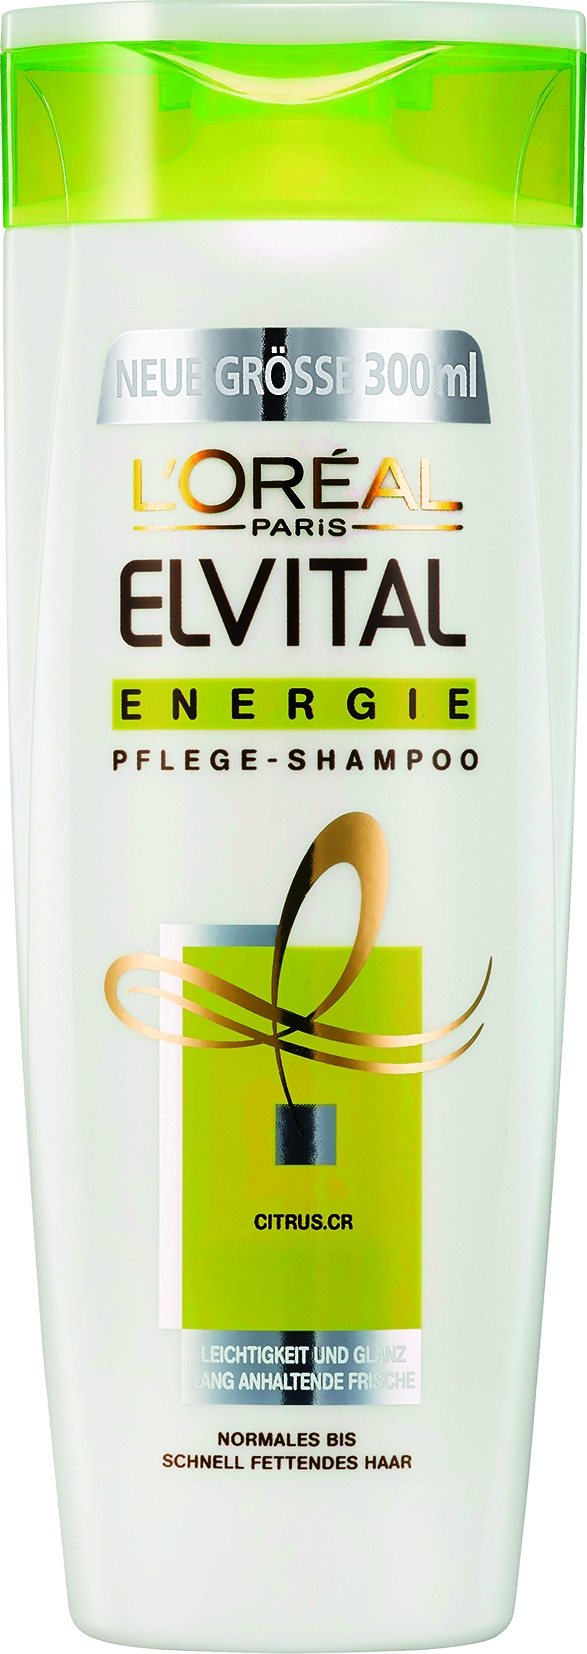 Shampoo Multivitamin